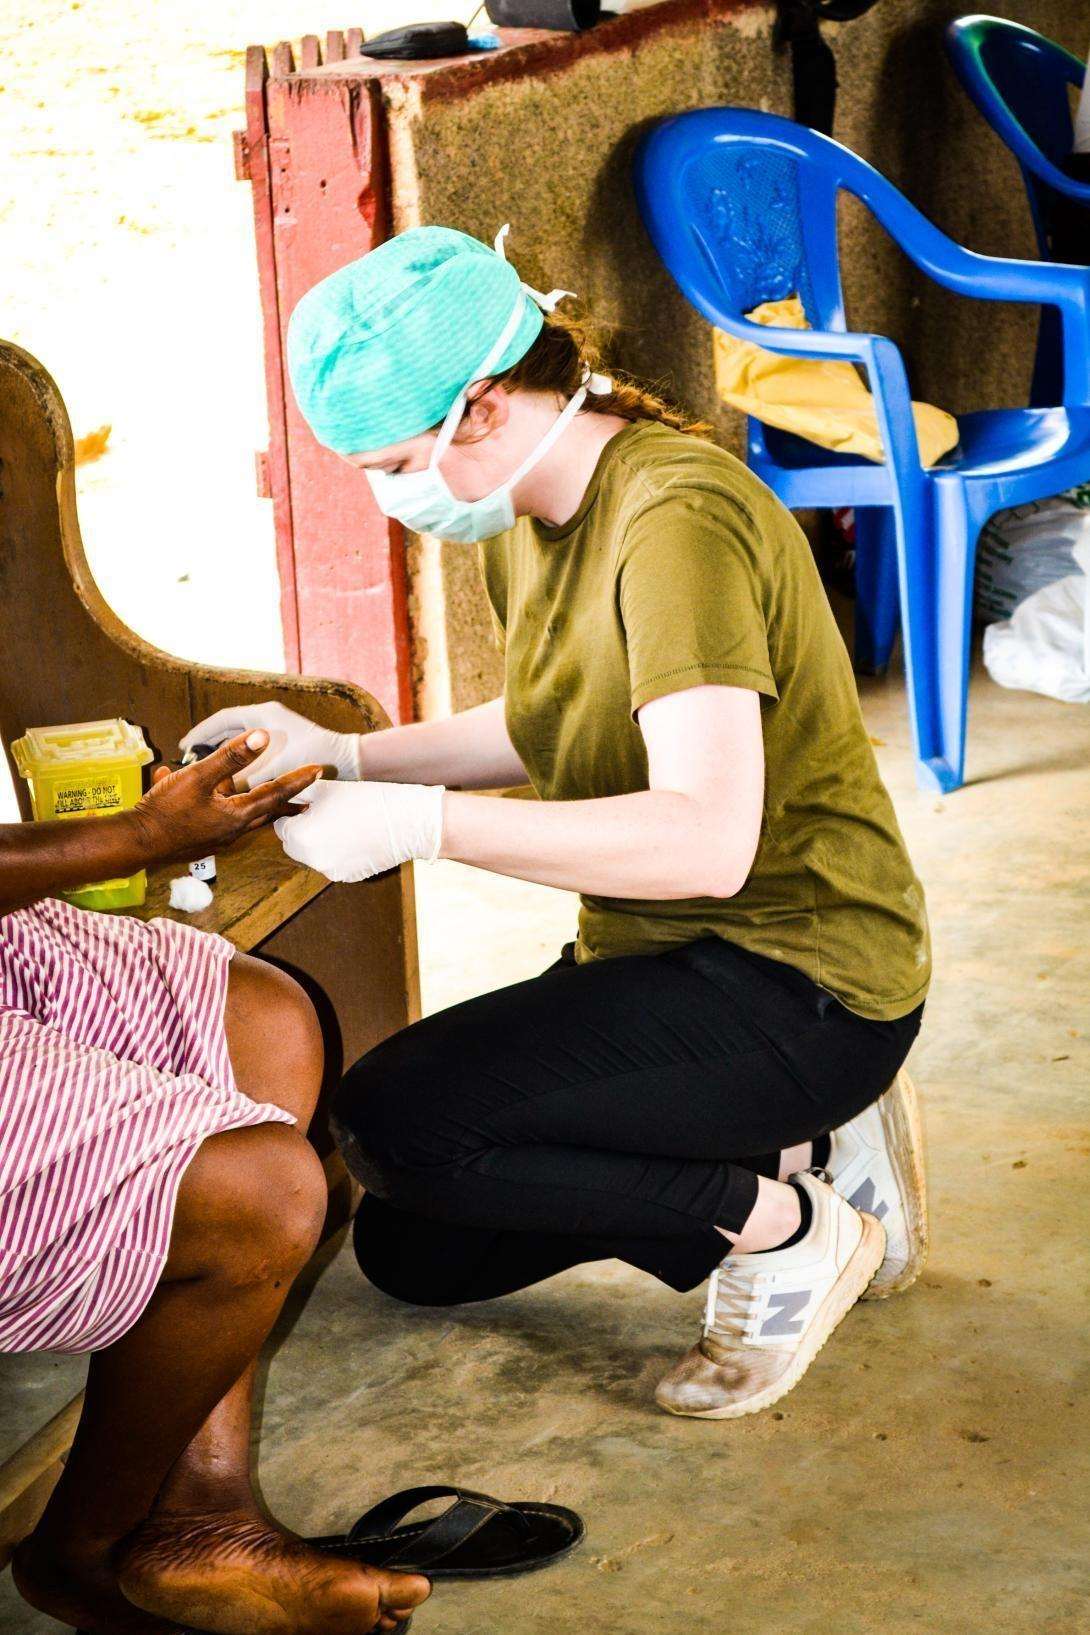 A healthcare volunteer in wearing a protective mask and gloves treats a patient on a medical internship in Ghana